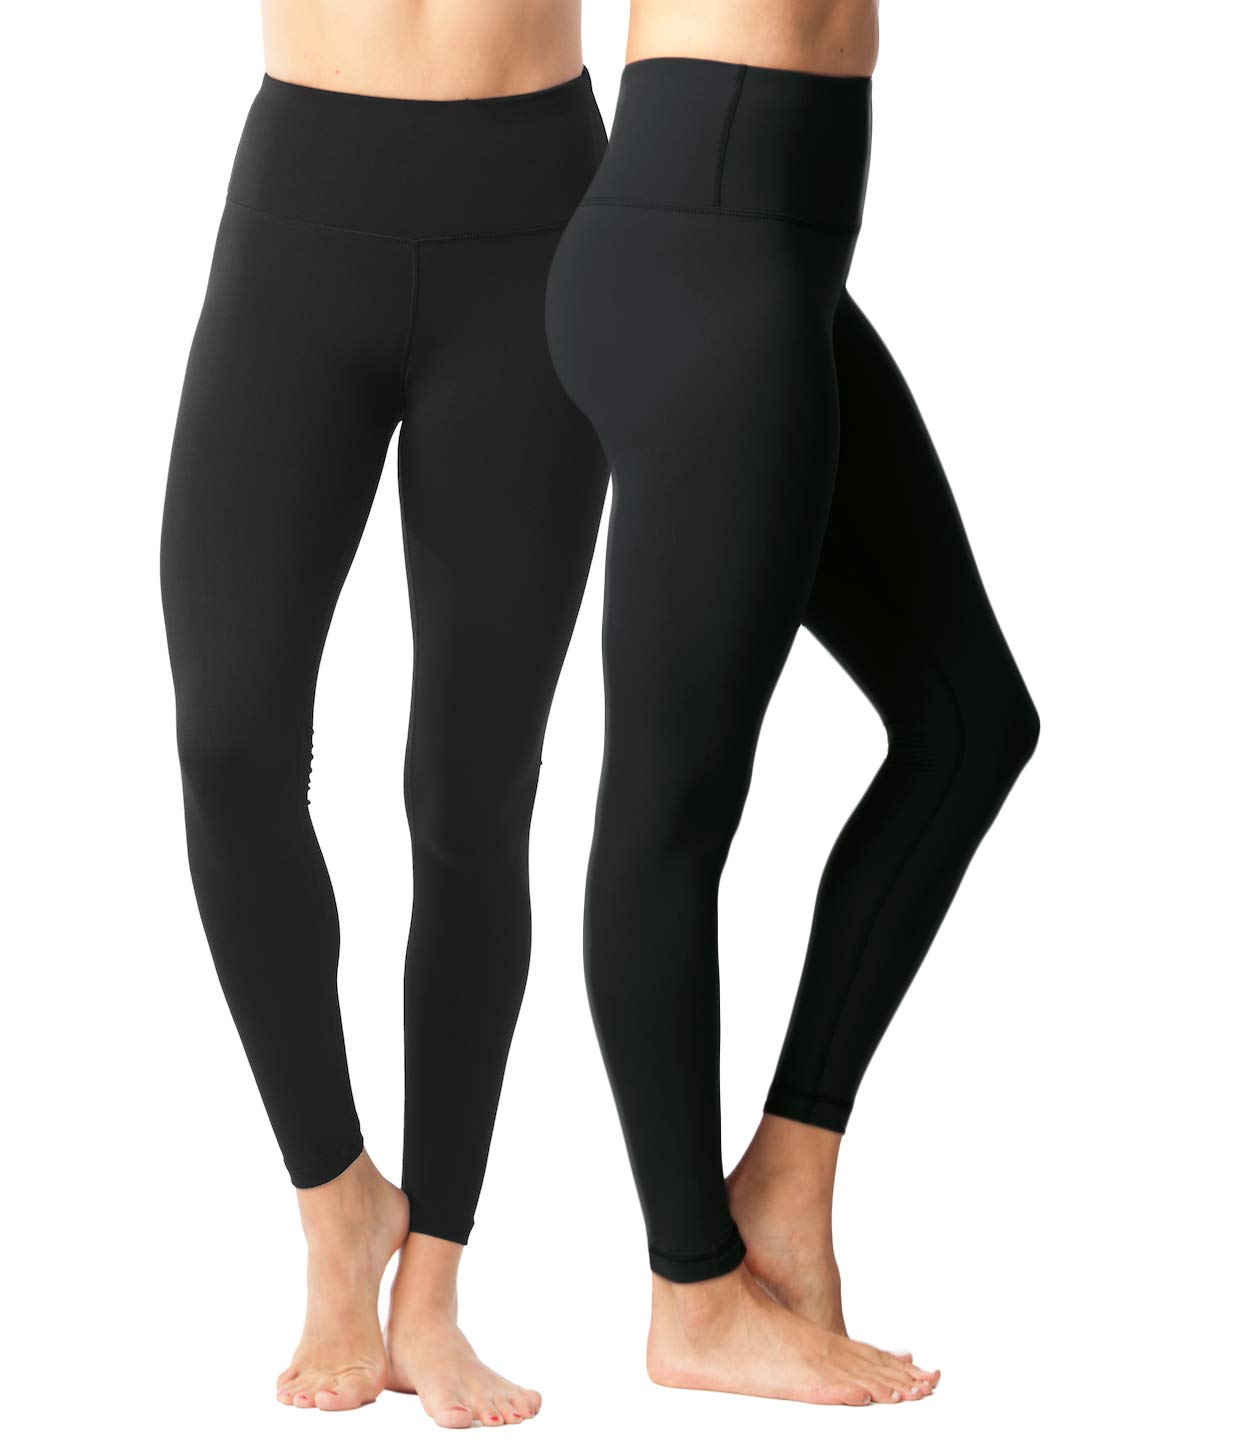 Yogalicious High Waist Ultra Soft Lightweight Leggings - High Rise Yoga Pants - 2 Pack - Black and New Olive - XS